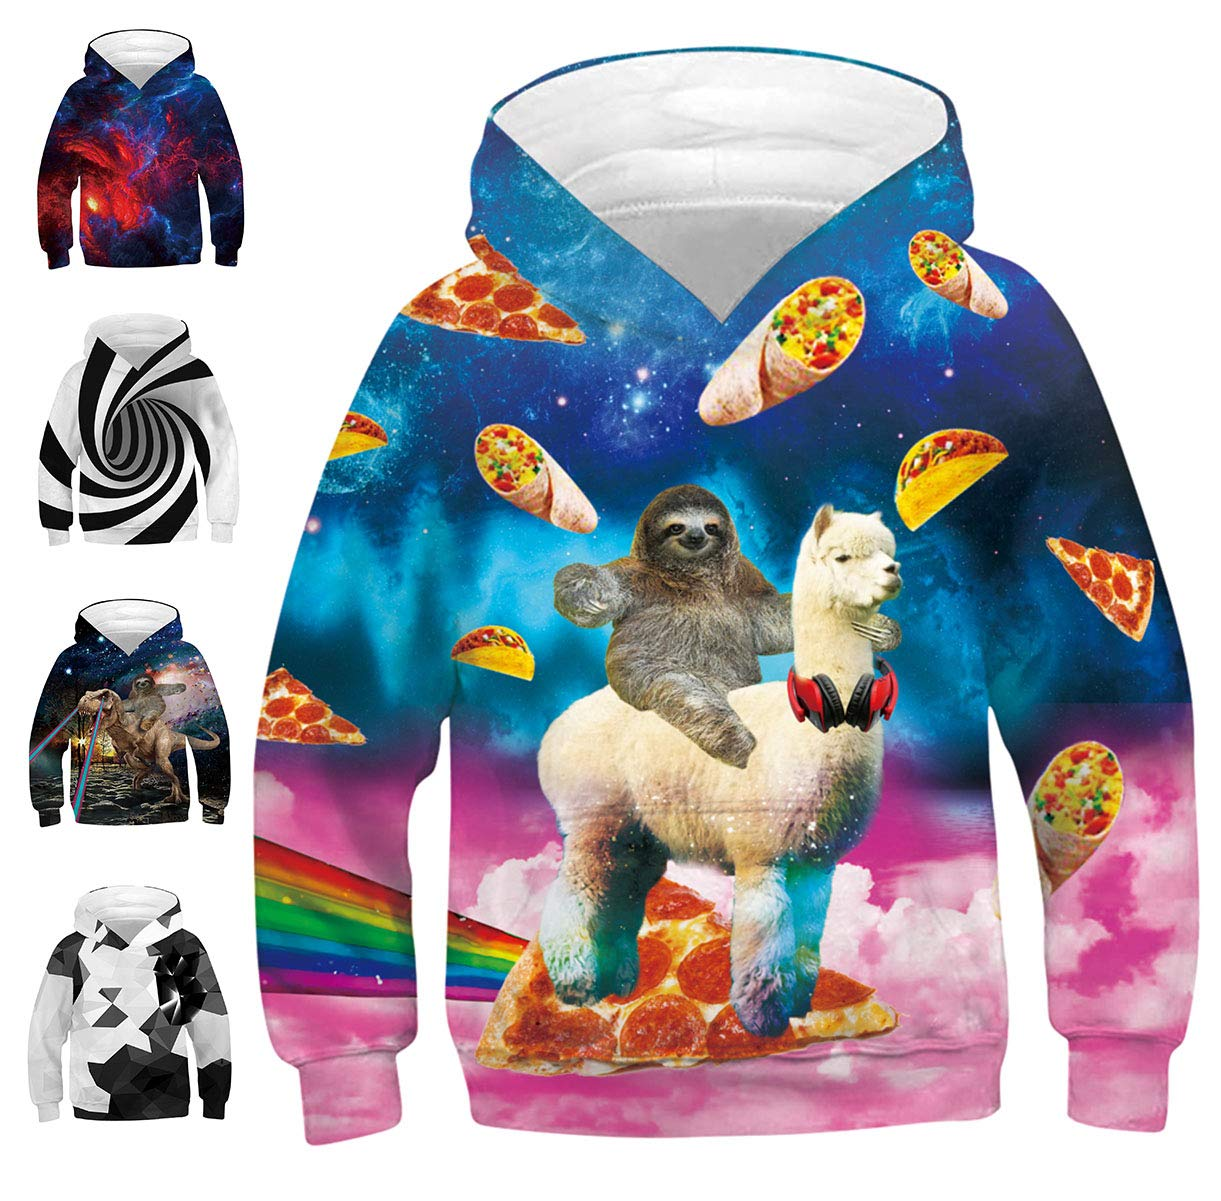 Teen Pullover Hoodies Pink Cloud Alpaca Pizza Cat Front Pouch Long Sleeve Leisure Tacky Sweatshirt Ink Fashion Digital Jersey Spring Autumn for Bro Friends Guys Green Blue (Alpaca&Sloth,S)